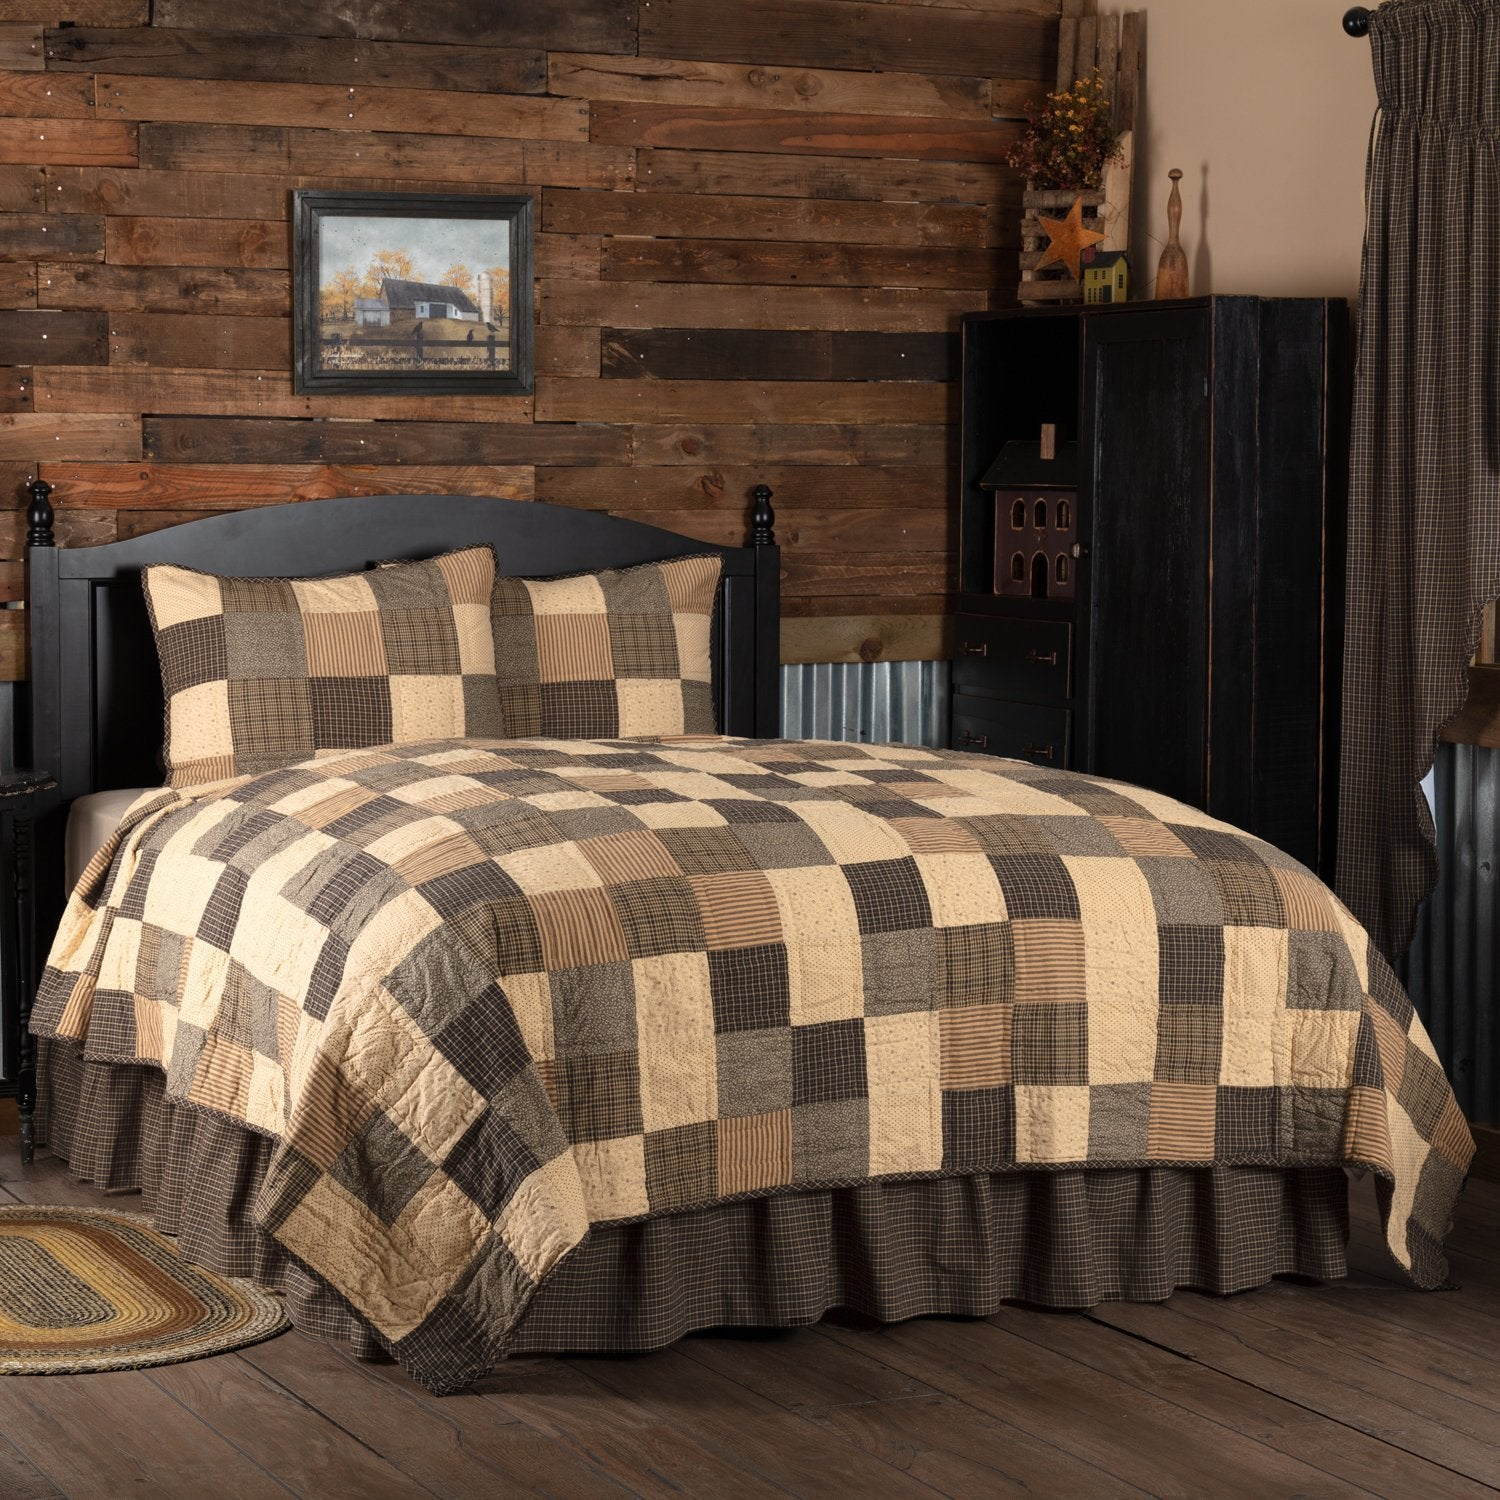 Kettle Grove Quilt Set.